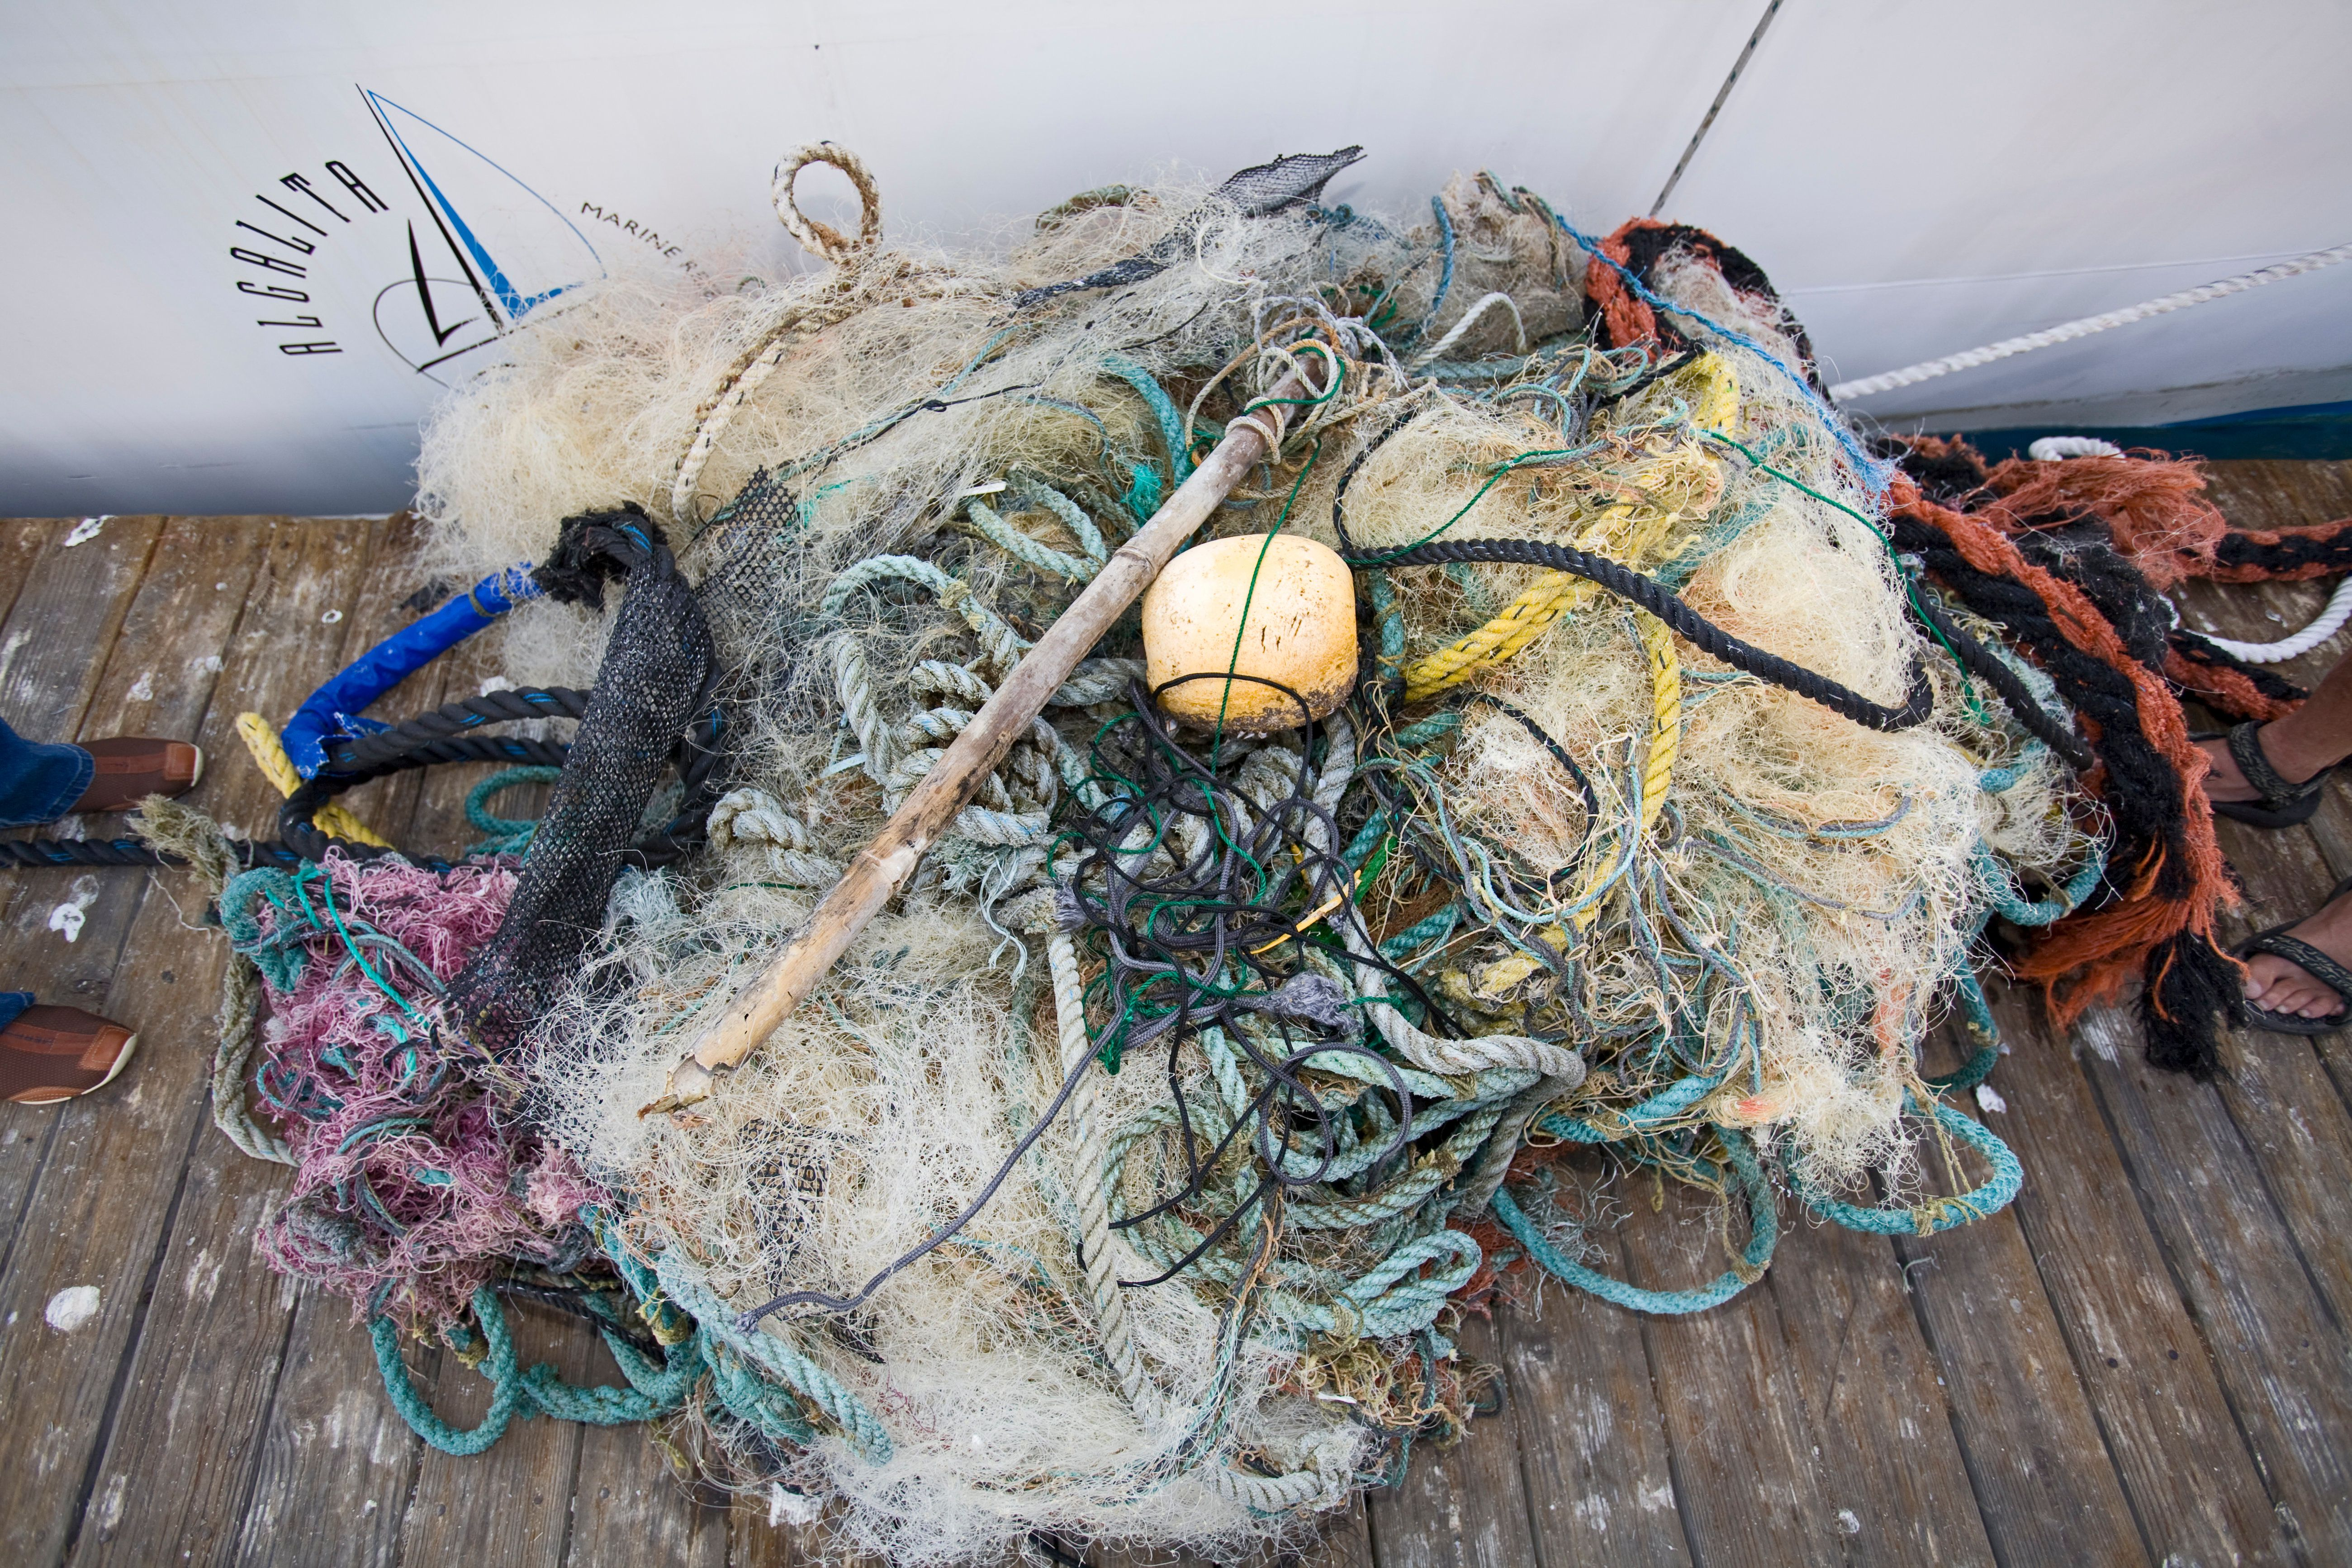 Trash and assorted garbage collected form the North Pacific Gyre. The ORV Alguita returns to Long beach after four months at sea sampling the waters of the great Pacific garbage patch' in the North Pacific Subtropical Gyre (NPSG). The Algalita Marine Research Foundation has been studying and educating the public about the effects of oceanic micro-plastic pollution on the ocean's ecosystem and marine life for over ten years. Long Beach, California, USA. (Photo by: Citizen of the Planet/Education Images/UIG via Getty Images)